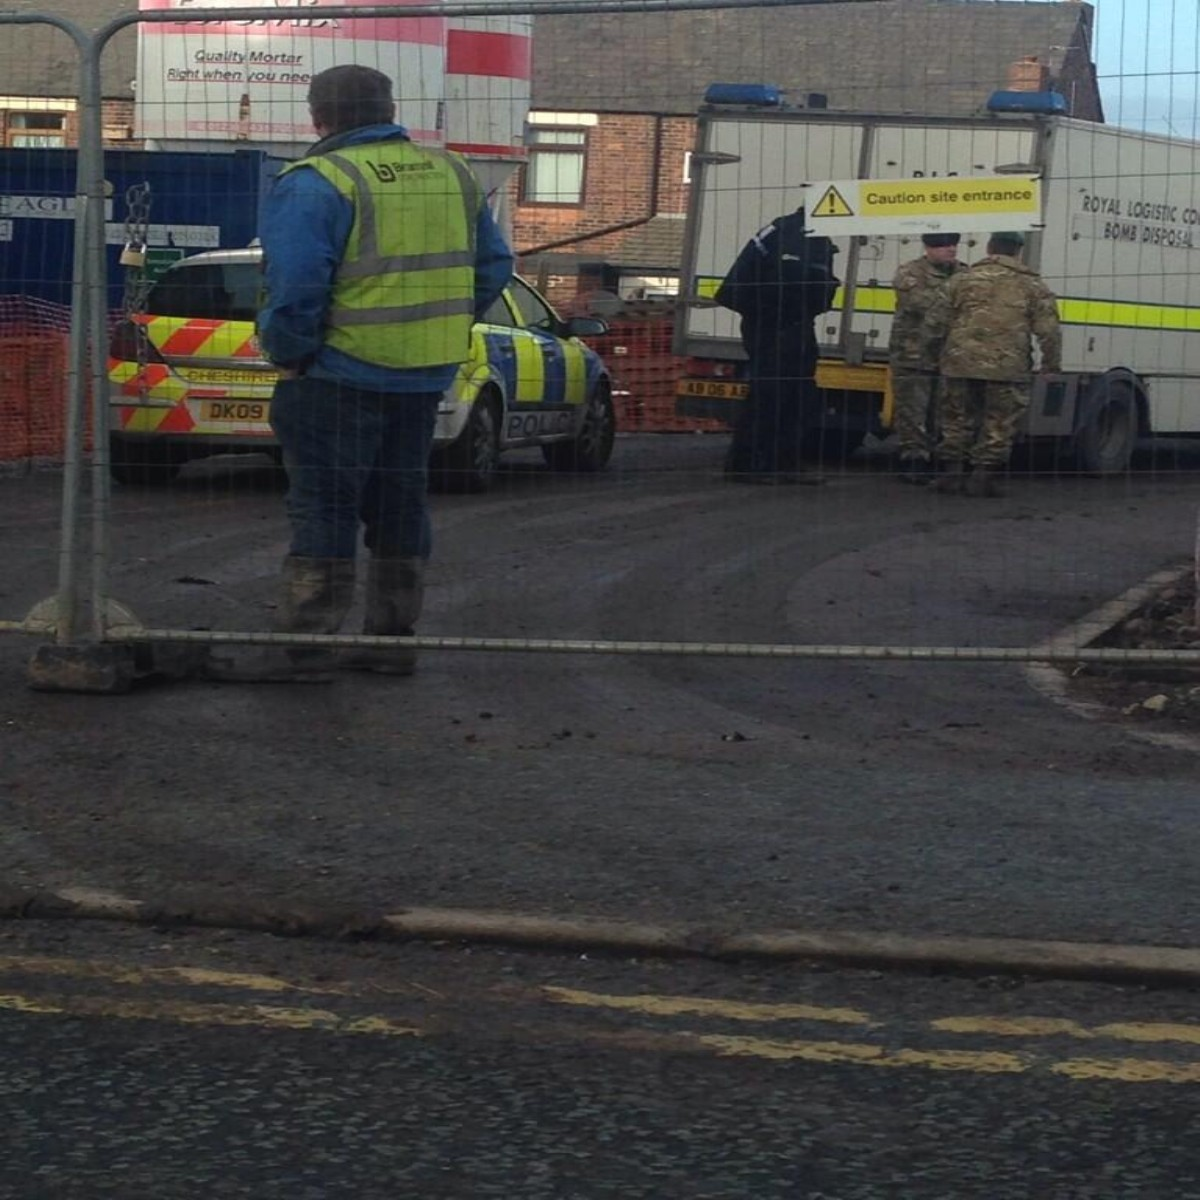 Bomb disposal unit called to Bewsey. Picture sent in by a reader